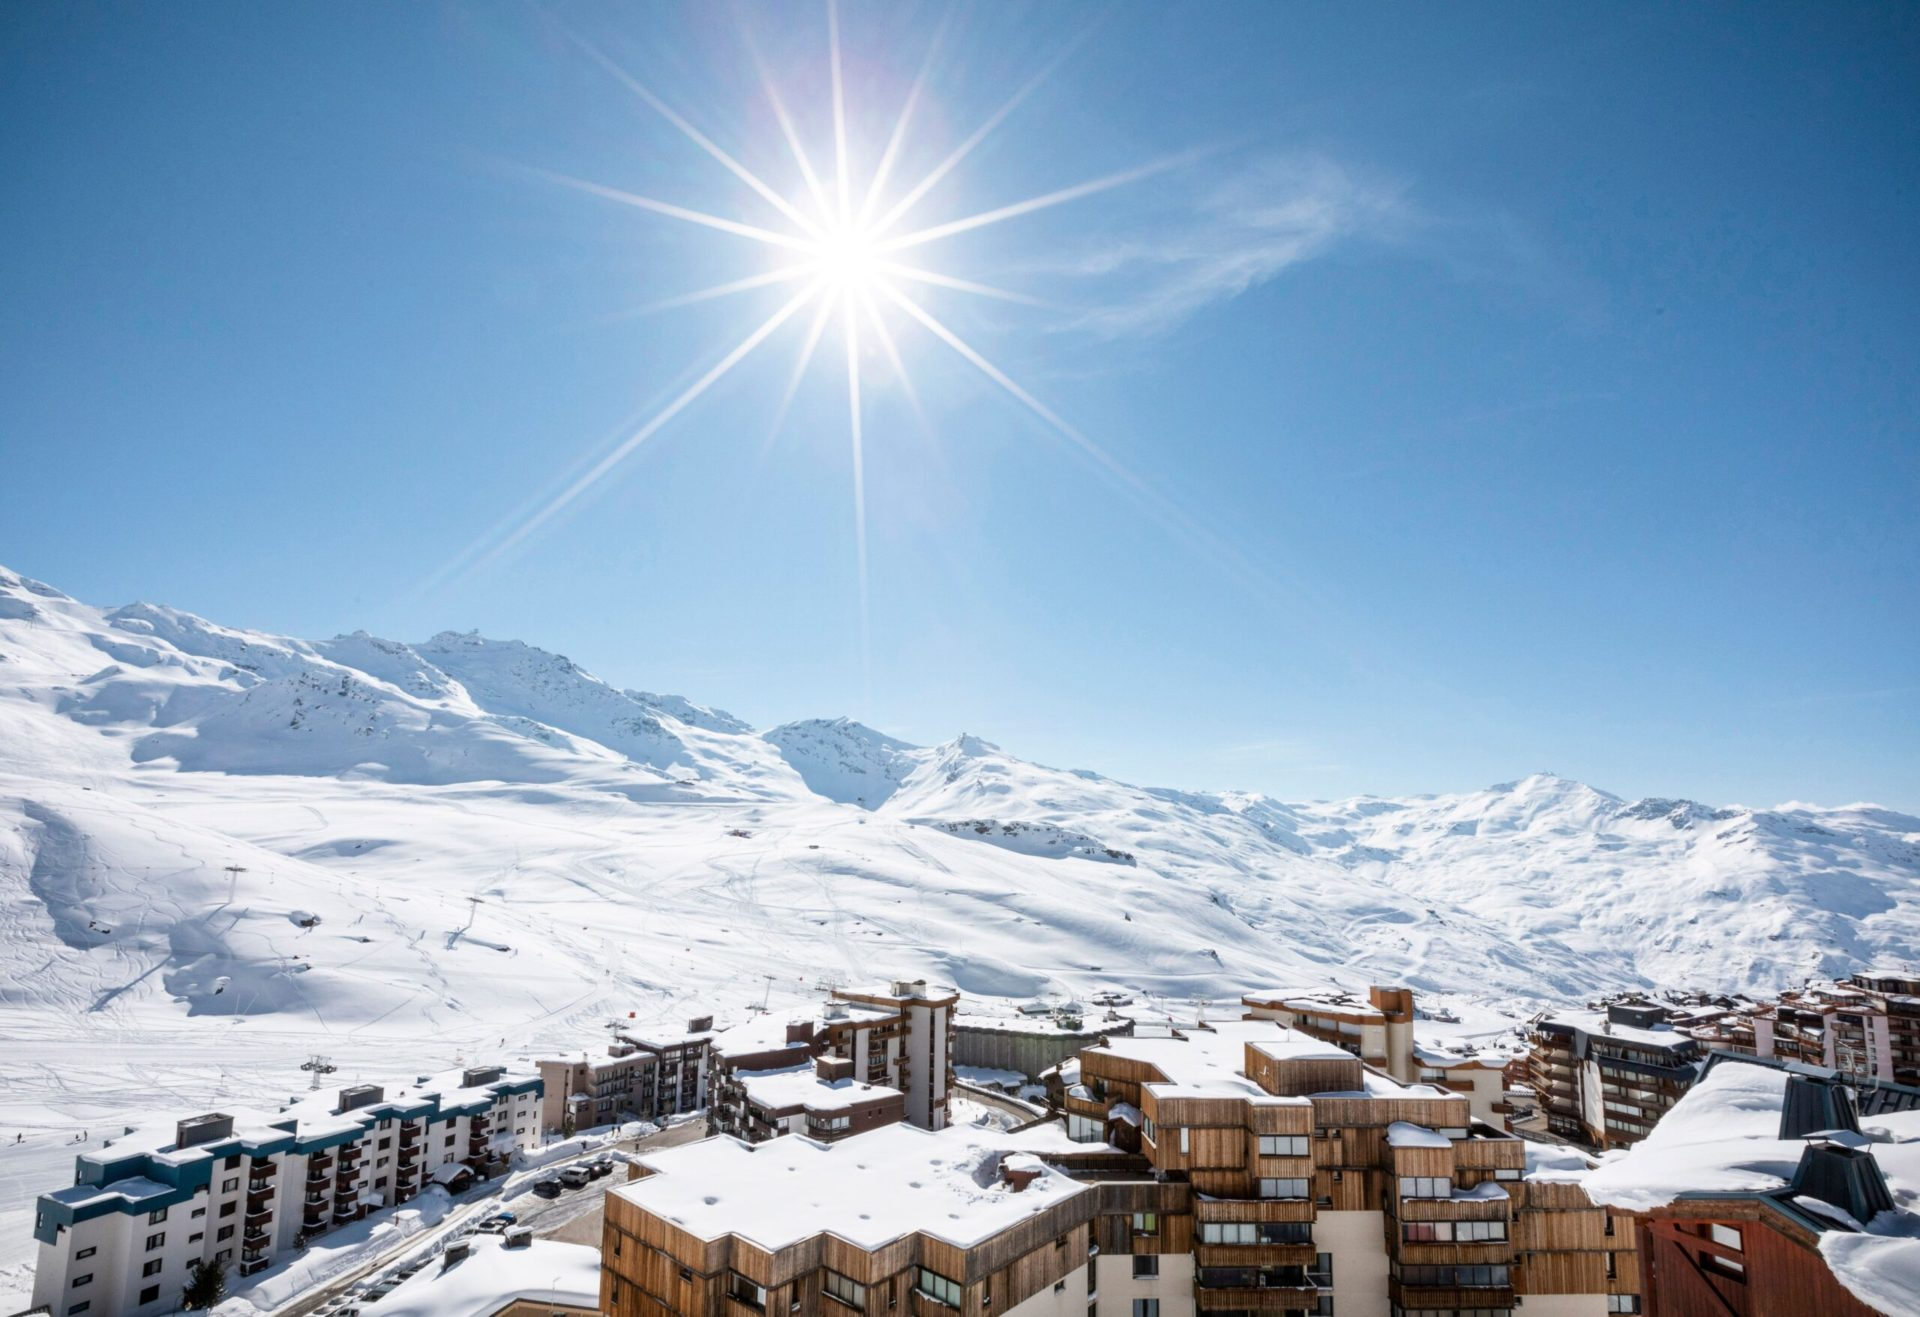 An image of the views from Chalet des Neiges Residence Hermine